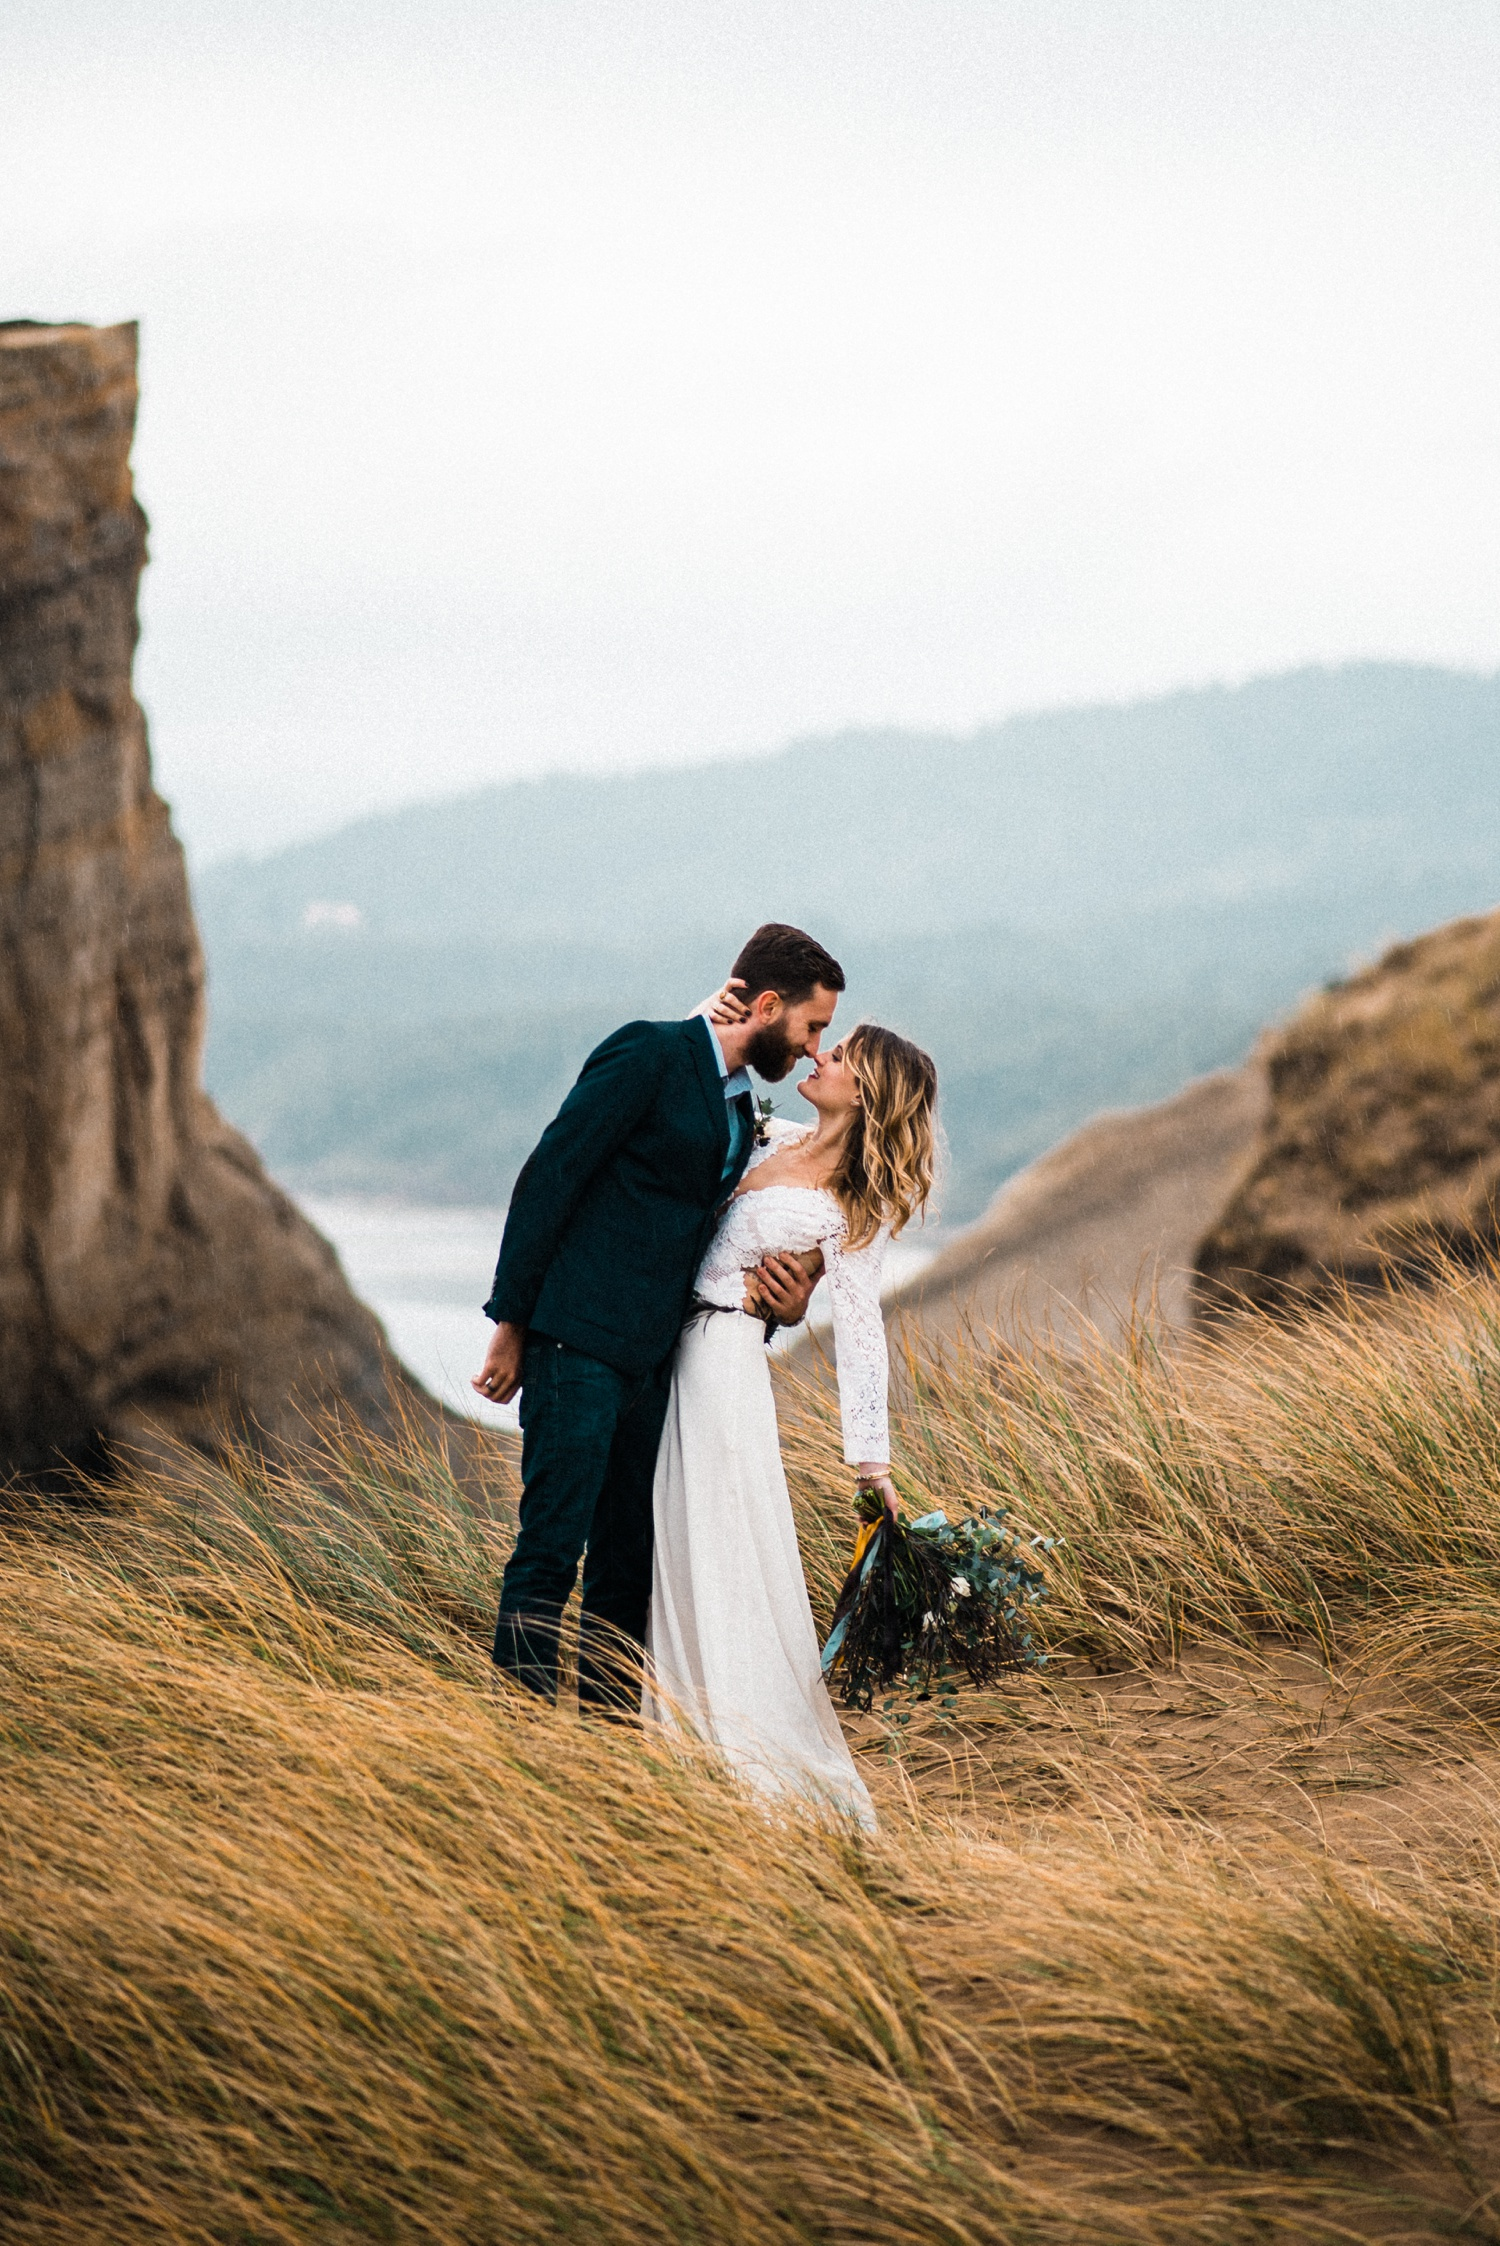 Oregon_Coast_Elopement_Wedding_The_Foxes_Photography_100-2.jpg